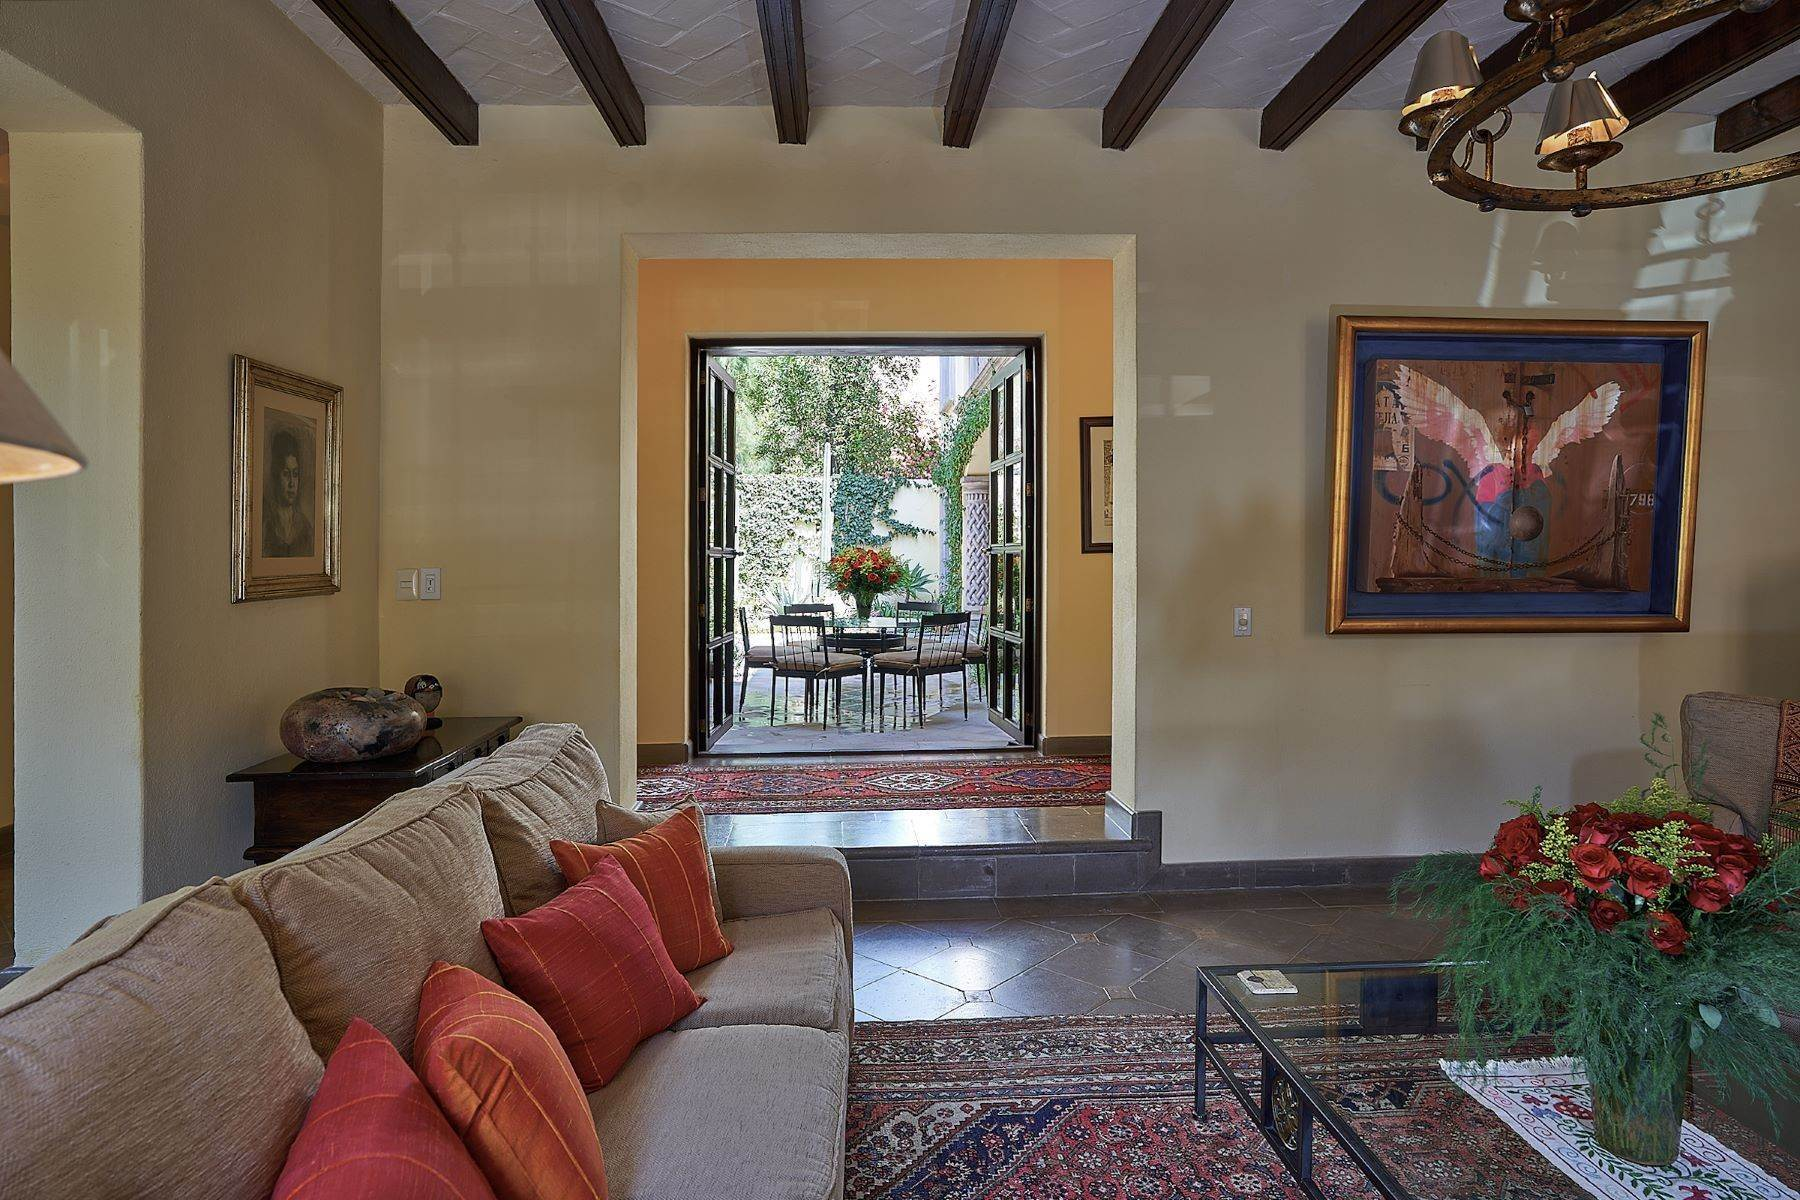 5. Single Family Homes for Sale at Casa Ixchel Privada de Pila Seca 6 San Miguel De Allende, Guanajuato 37700 Mexico